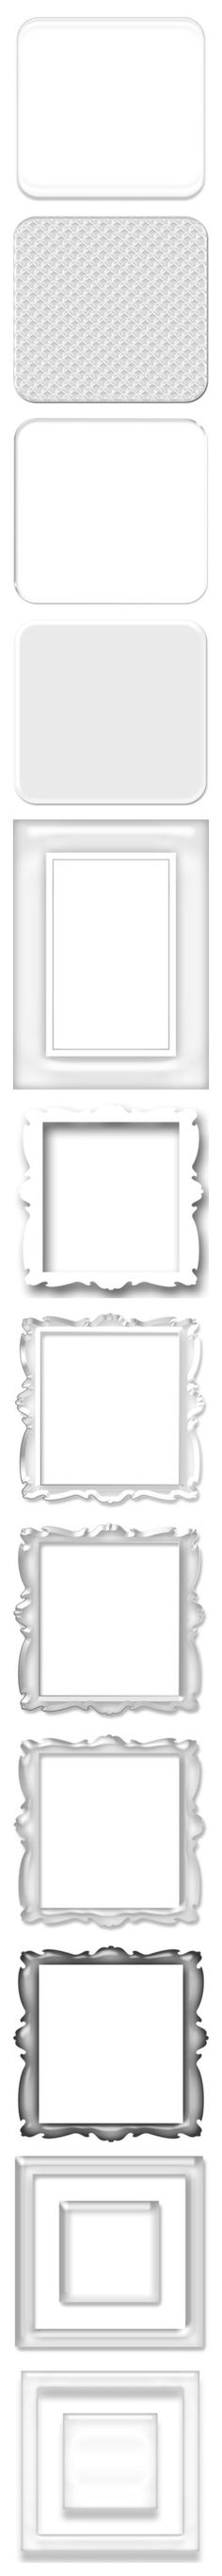 """""""Glass Squares & Frames"""" by fearlesslyinlove7 ❤ liked on Polyvore featuring frames, effects, borders, filler, picture frame, エフェクト段, frame, effect, cornici and backgrounds"""